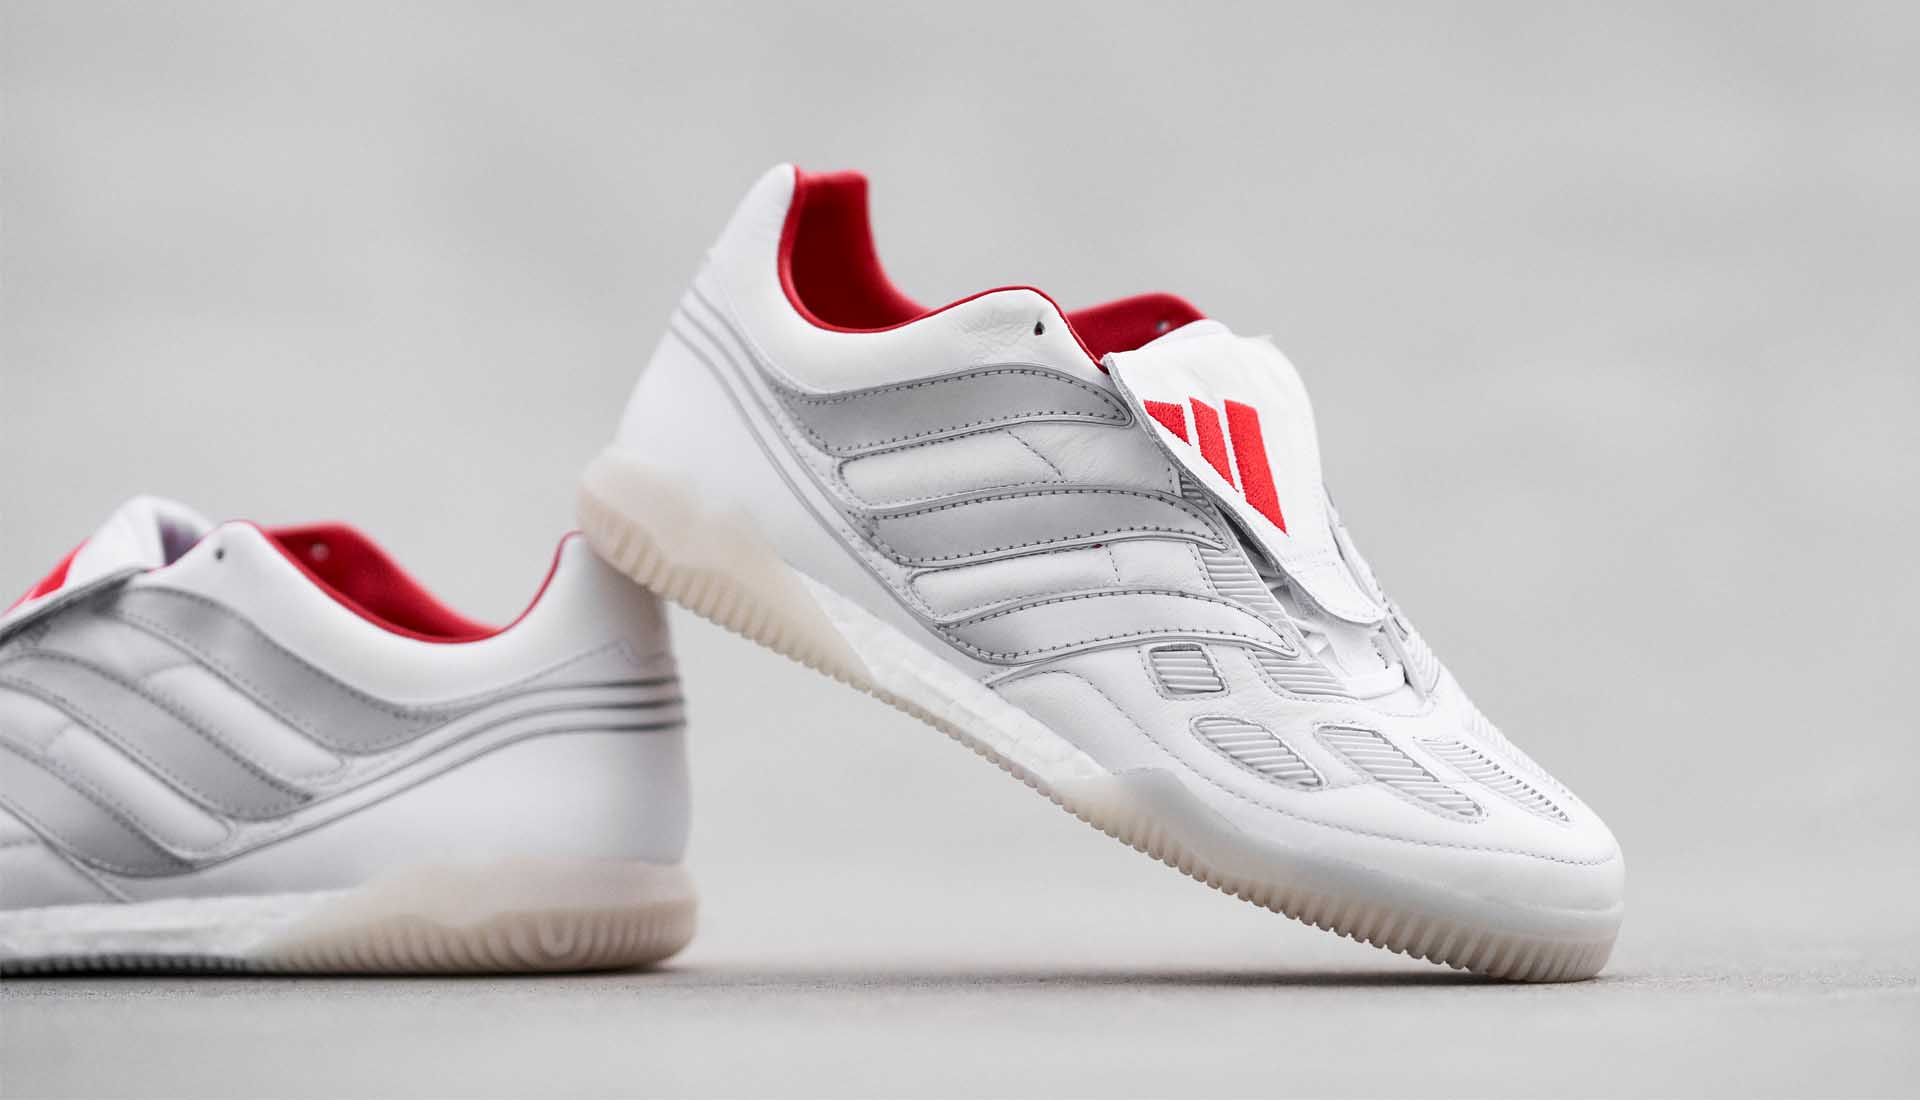 c47b0c92ae5ce Closer Look at the adidas  25 Years of Predator  Beckham Precision ...